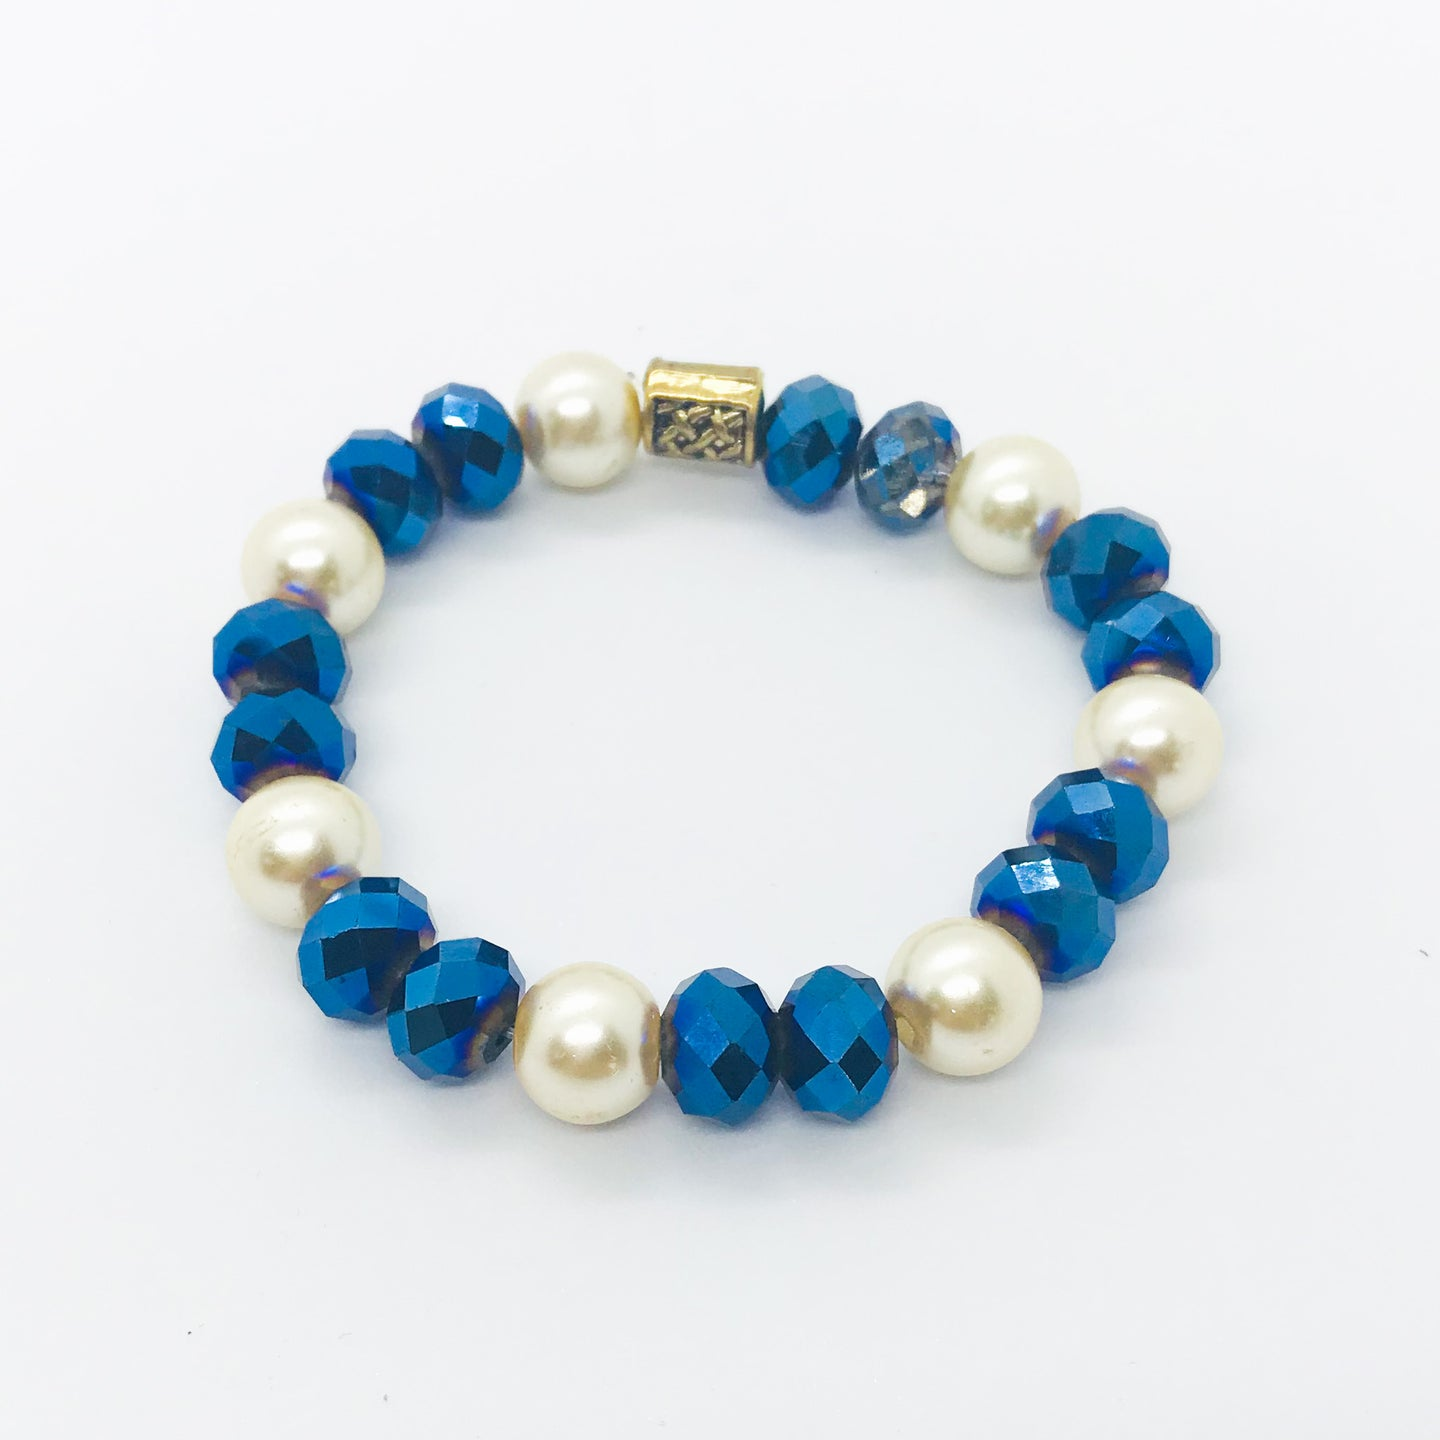 Glass Bead Stretchy Bracelet - B726